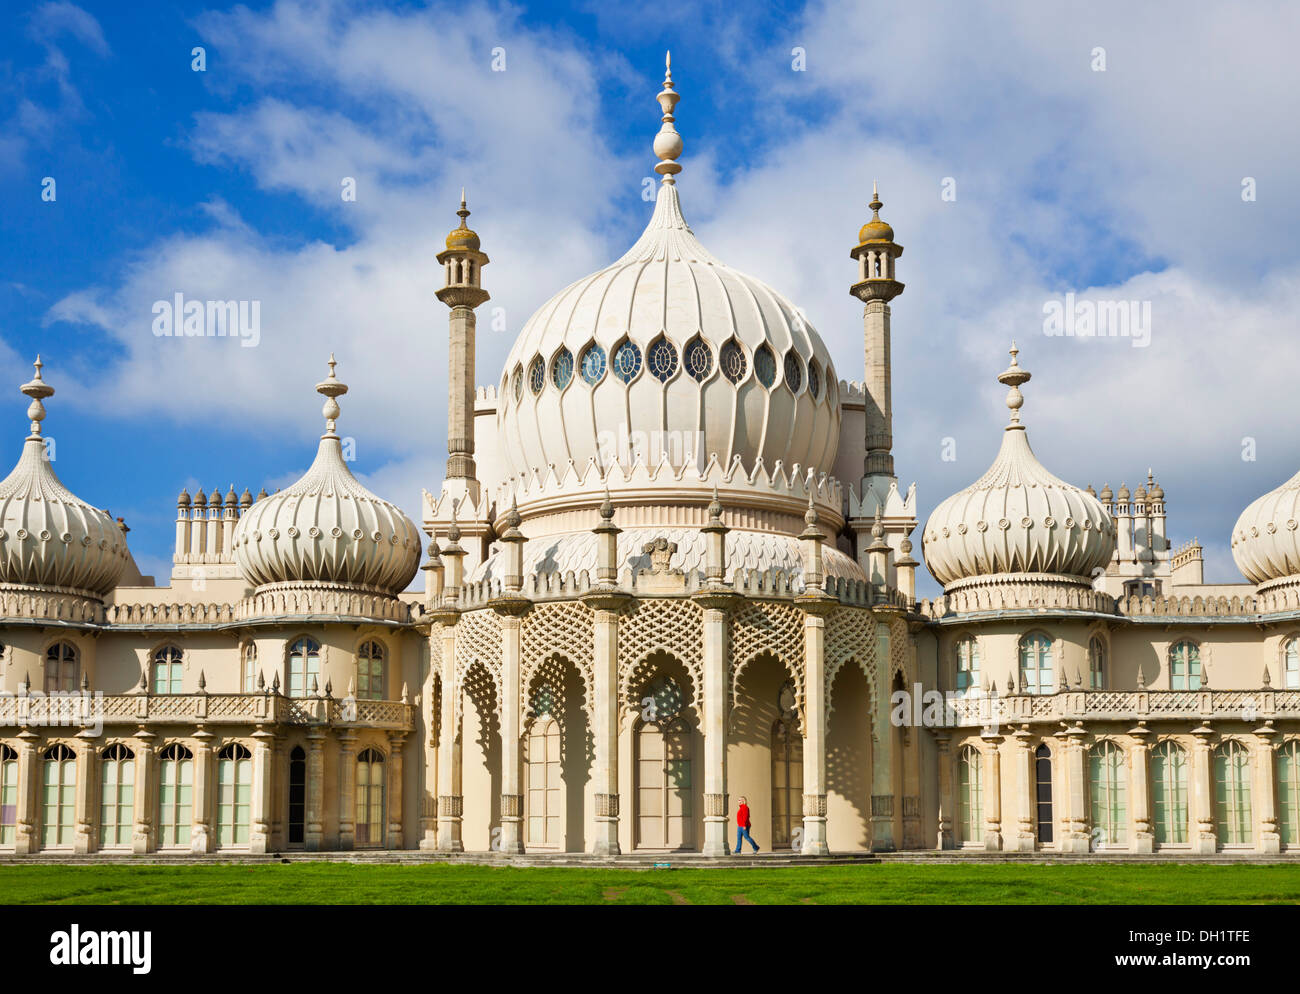 Brighton Pavillion pavilion Brighton East Sussex England UK GB EU Europe - Stock Image